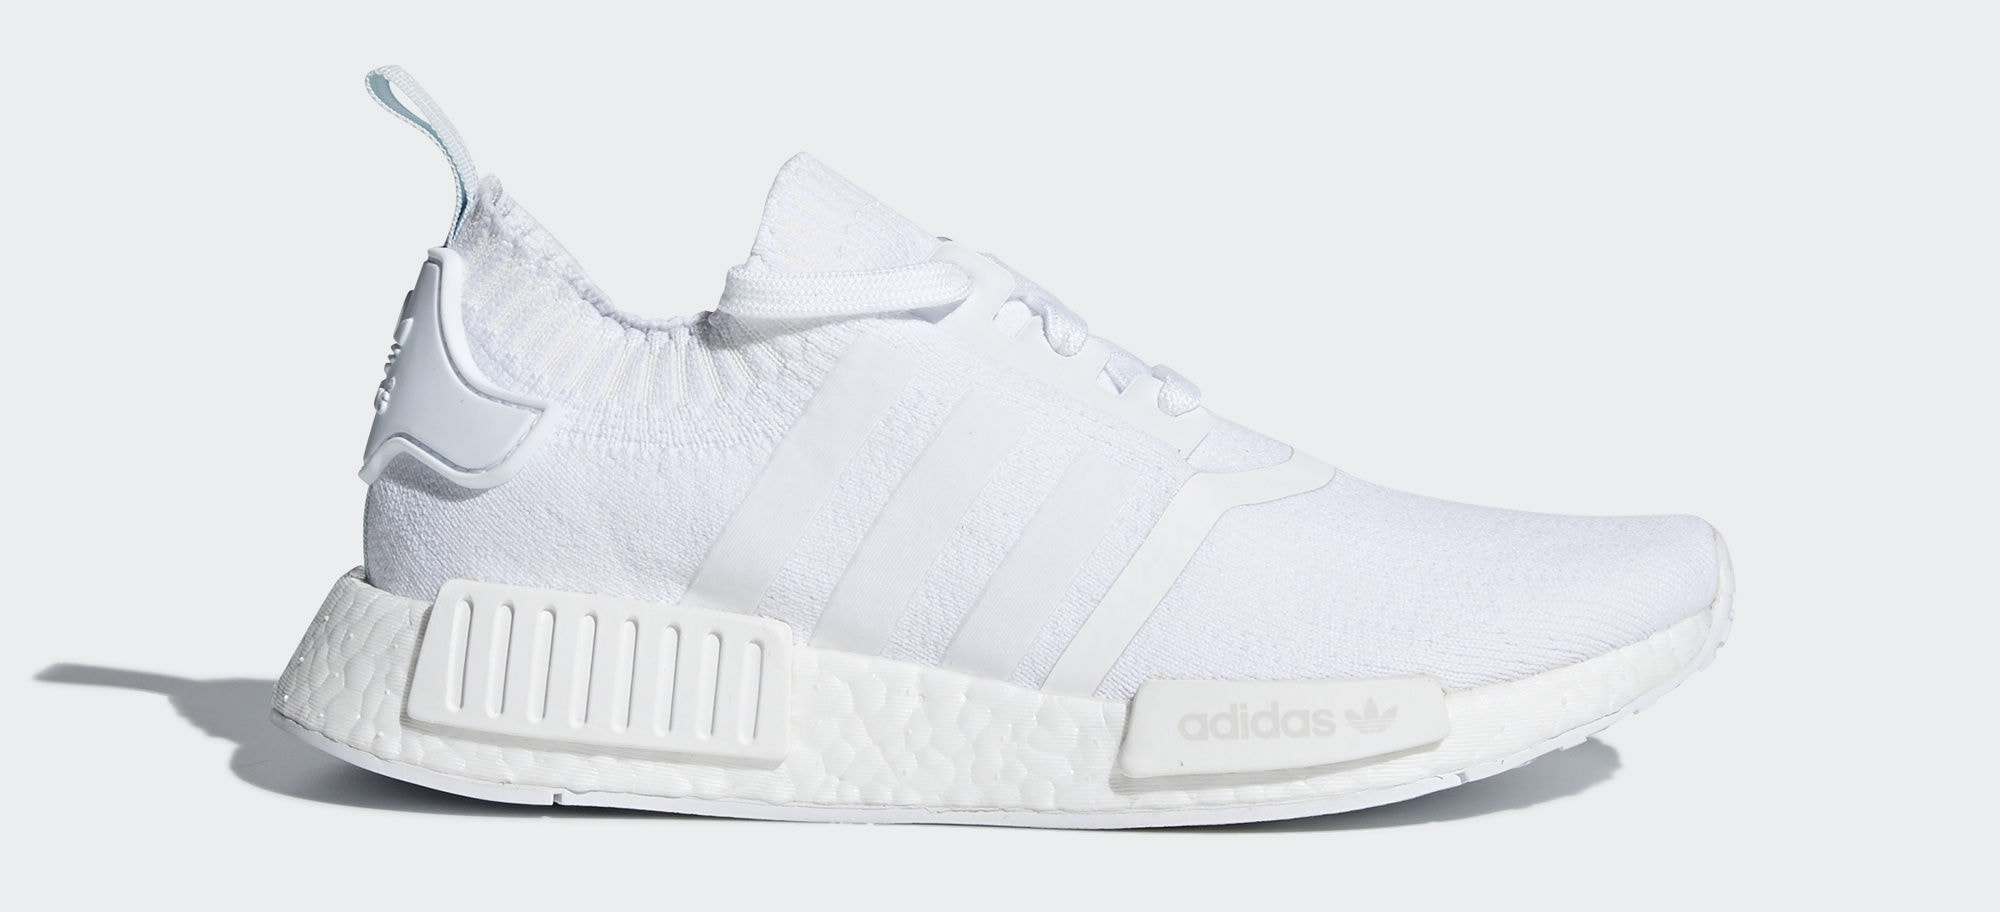 adidas white nmd release adidas ultra boost white red blue